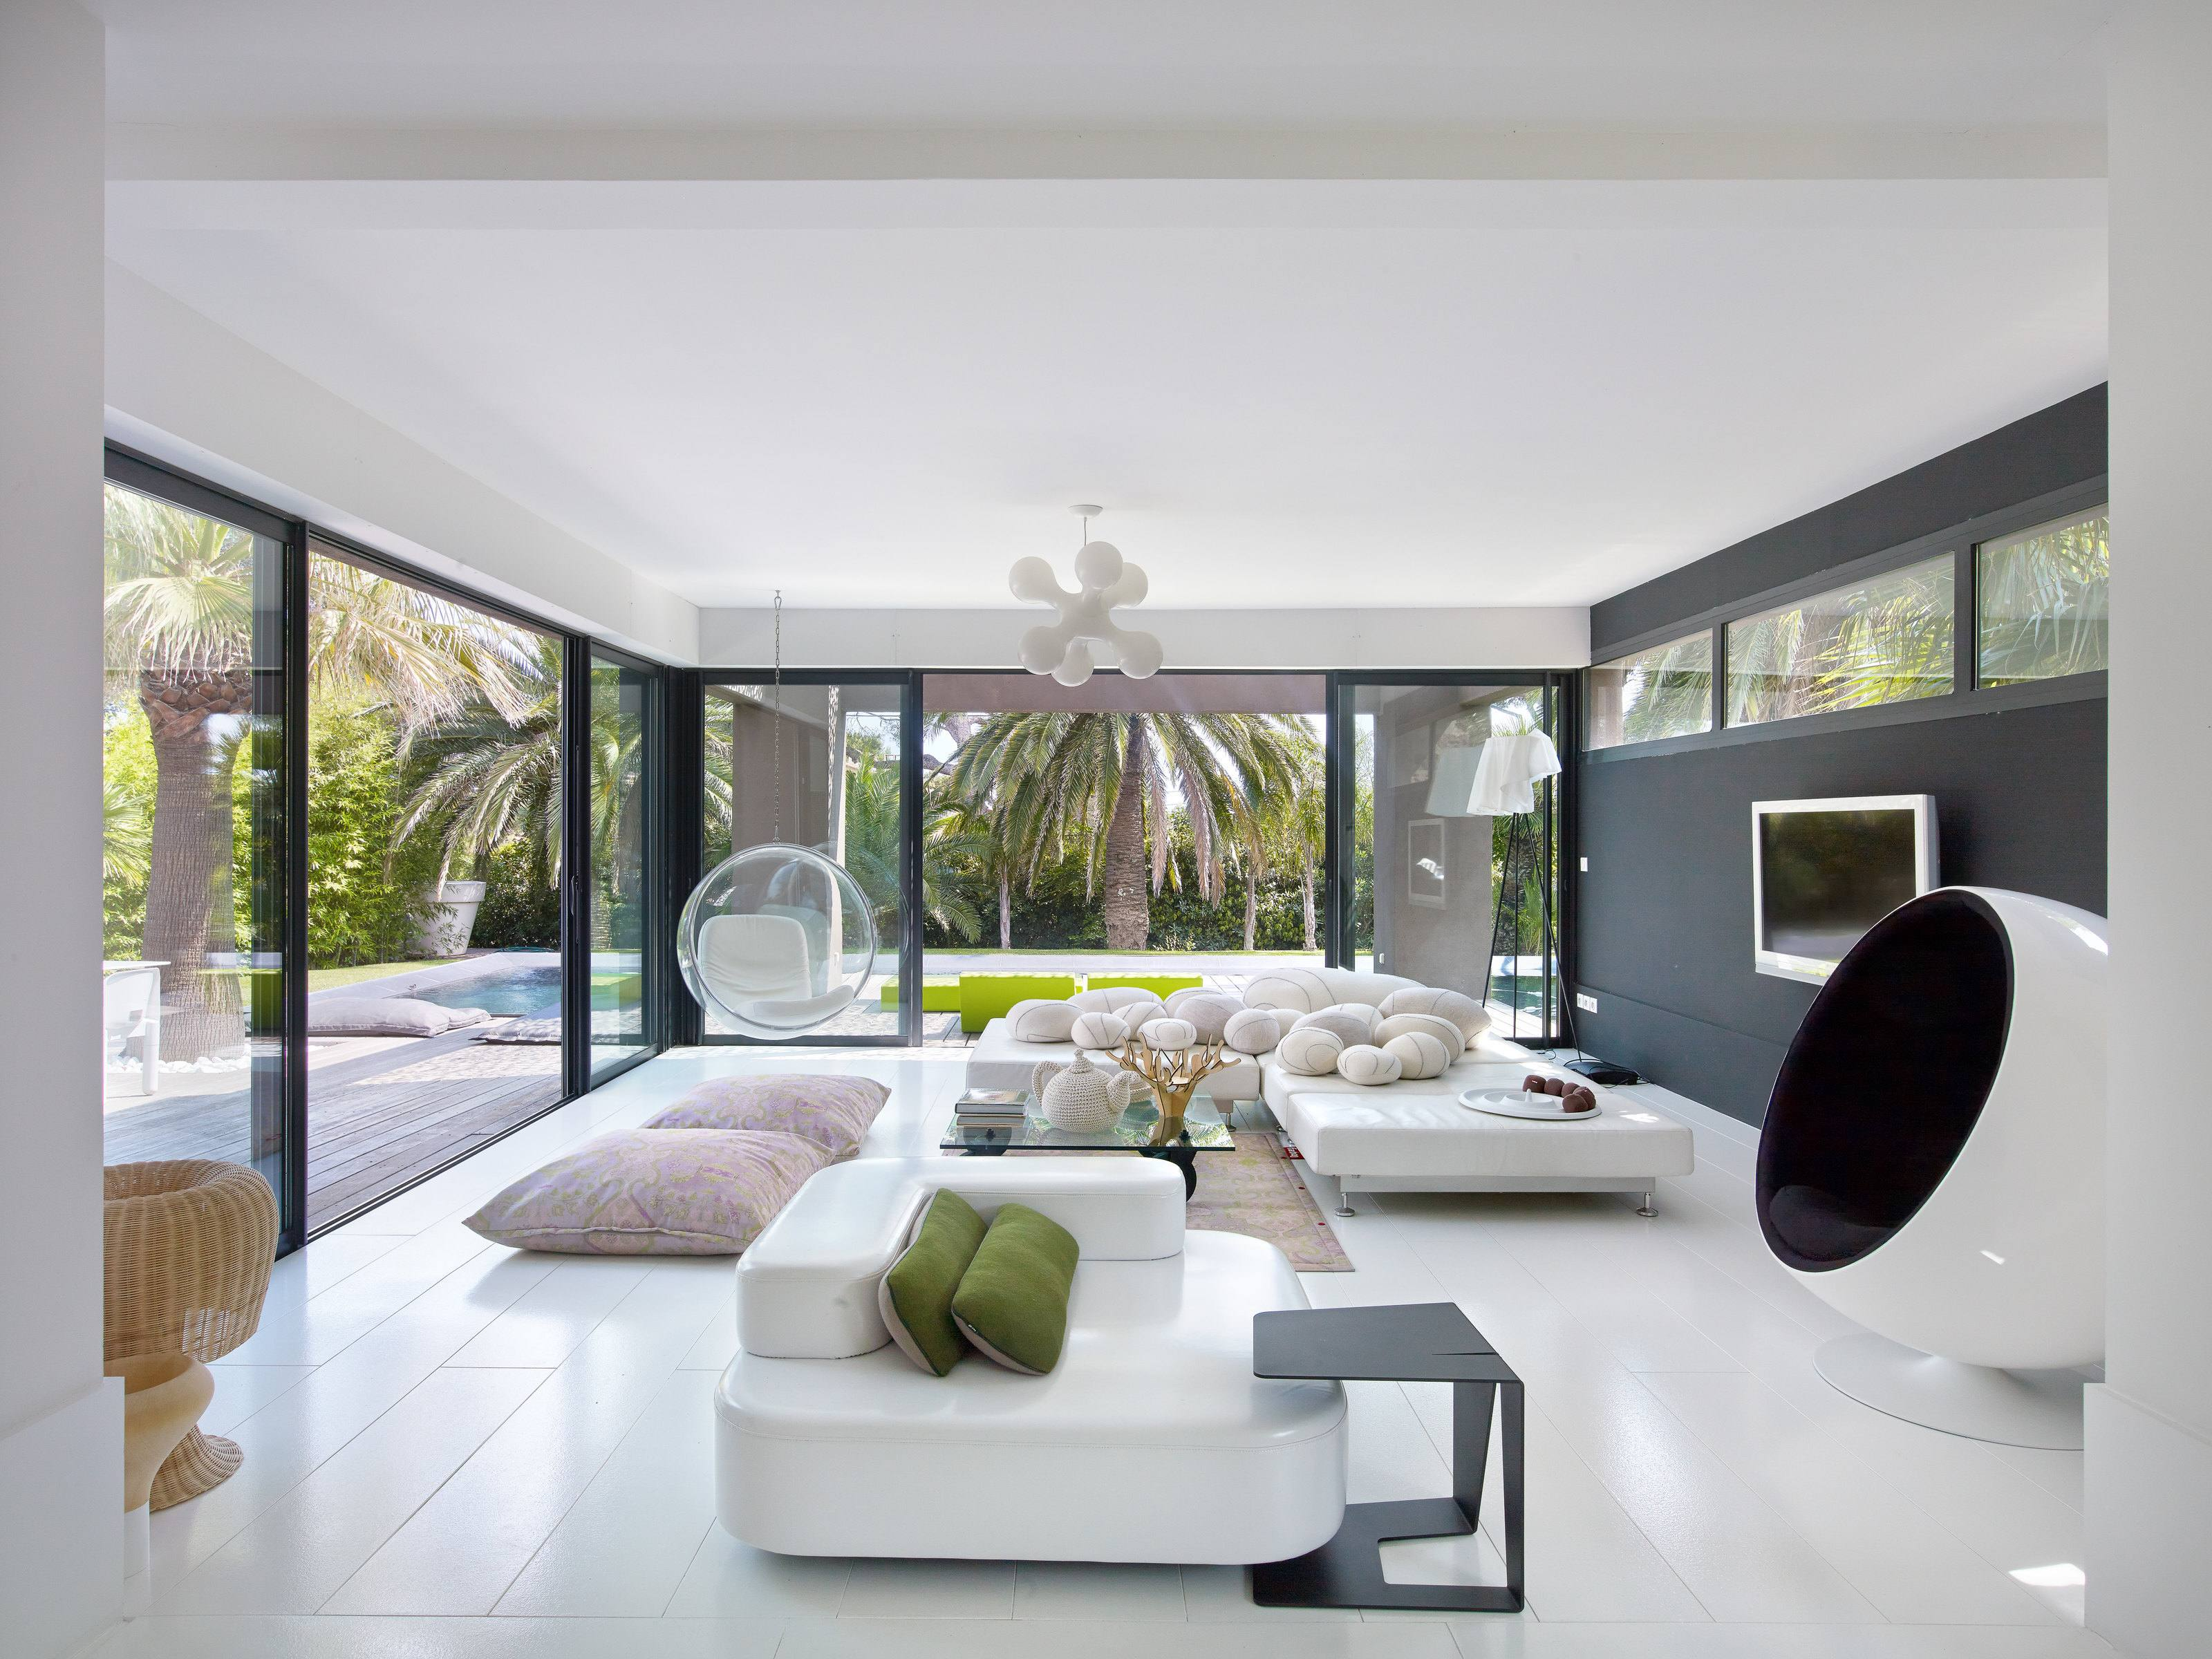 Playfully modern pleasantly colorful beautifully for Maison decoration interieur moderne villas